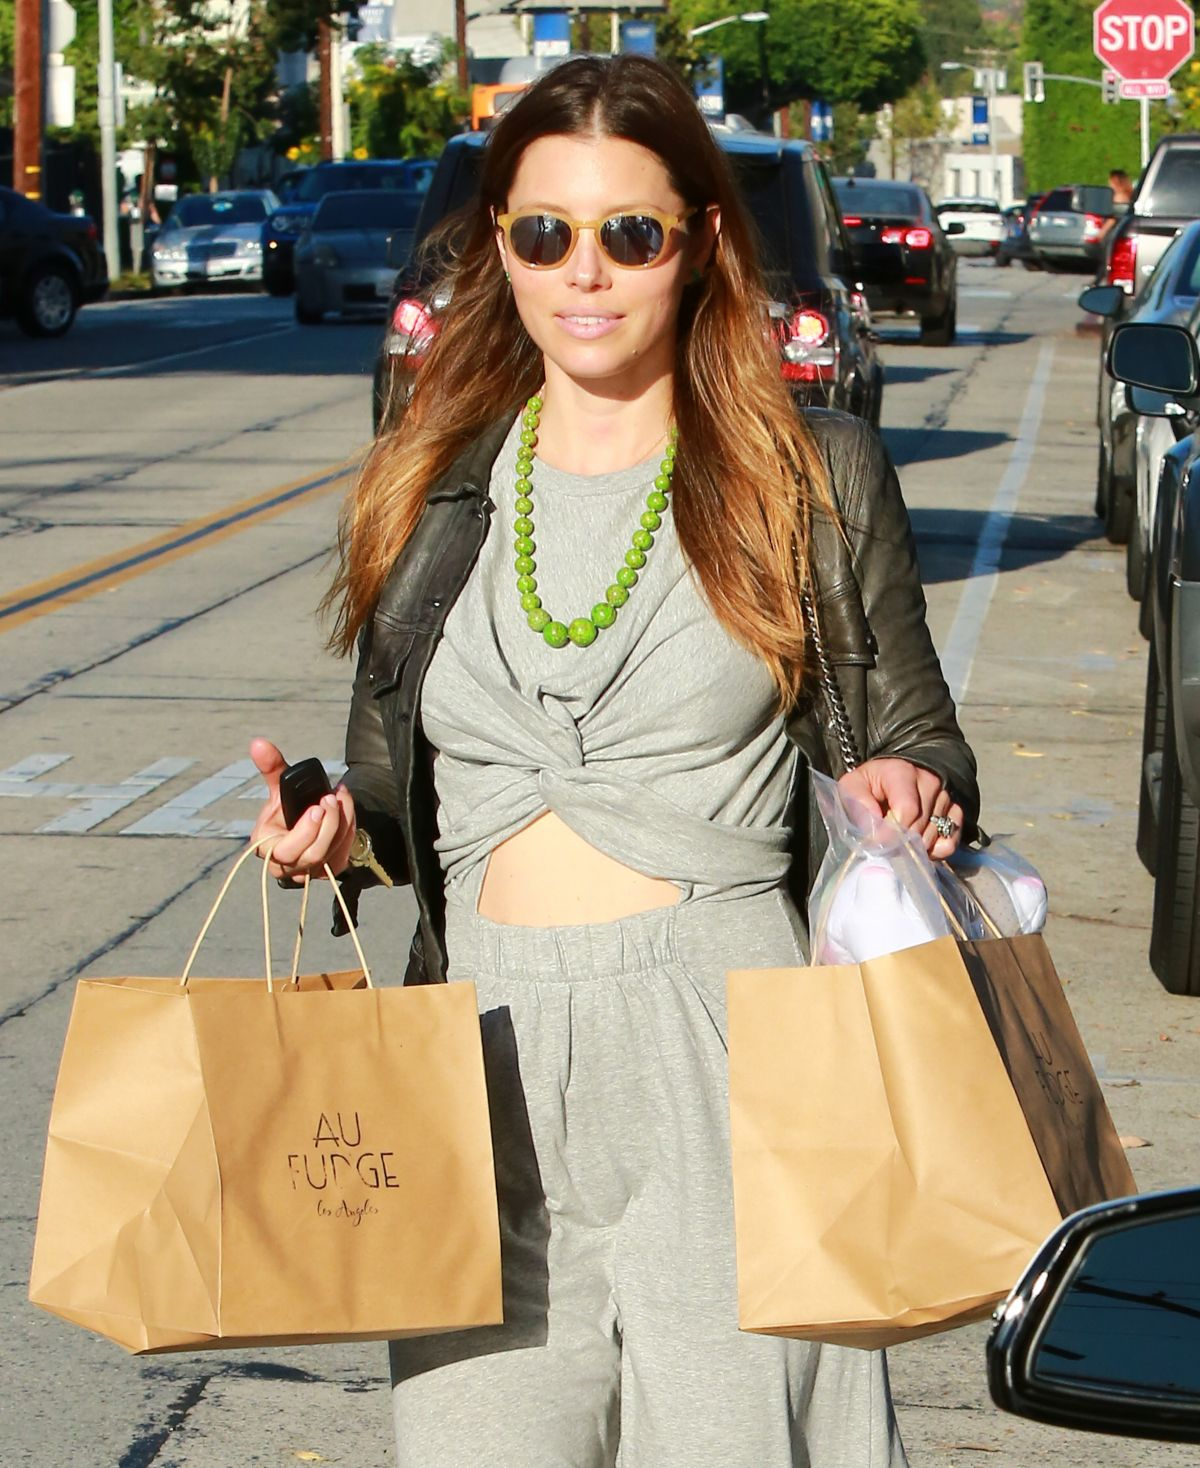 Molly sims archives page 2 of 7 hawtcelebs hawtcelebs - Jessica Biel Leaves Au Fudge In Beverly Hills 07 27 2016